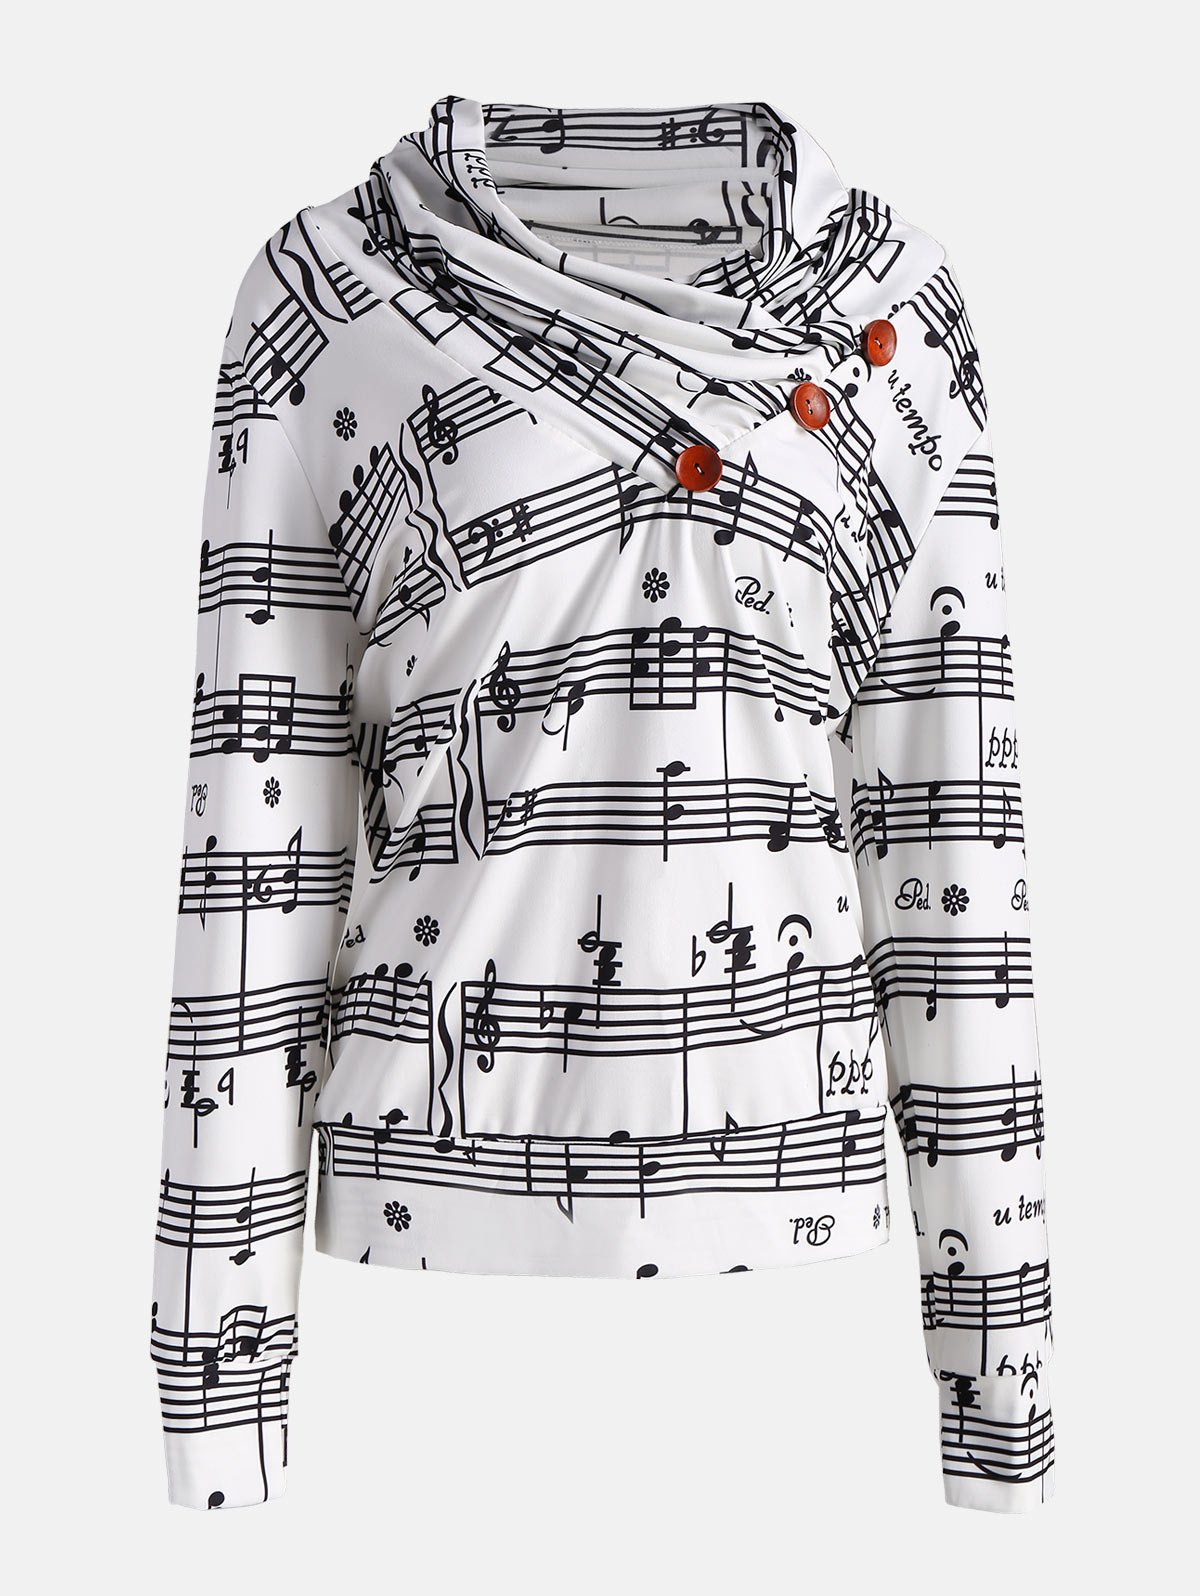 Cowl Neck Musical Notes Print SweatshirtWOMEN<br><br>Size: M; Color: WHITE AND BLACK; Material: Polyester,Spandex; Shirt Length: Regular; Sleeve Length: Full; Style: Fashion; Pattern Style: Print; Elasticity: Elastic; Season: Fall,Spring,Winter; Weight: 0.4400kg; Package Contents: 1 x Sweatshirt;